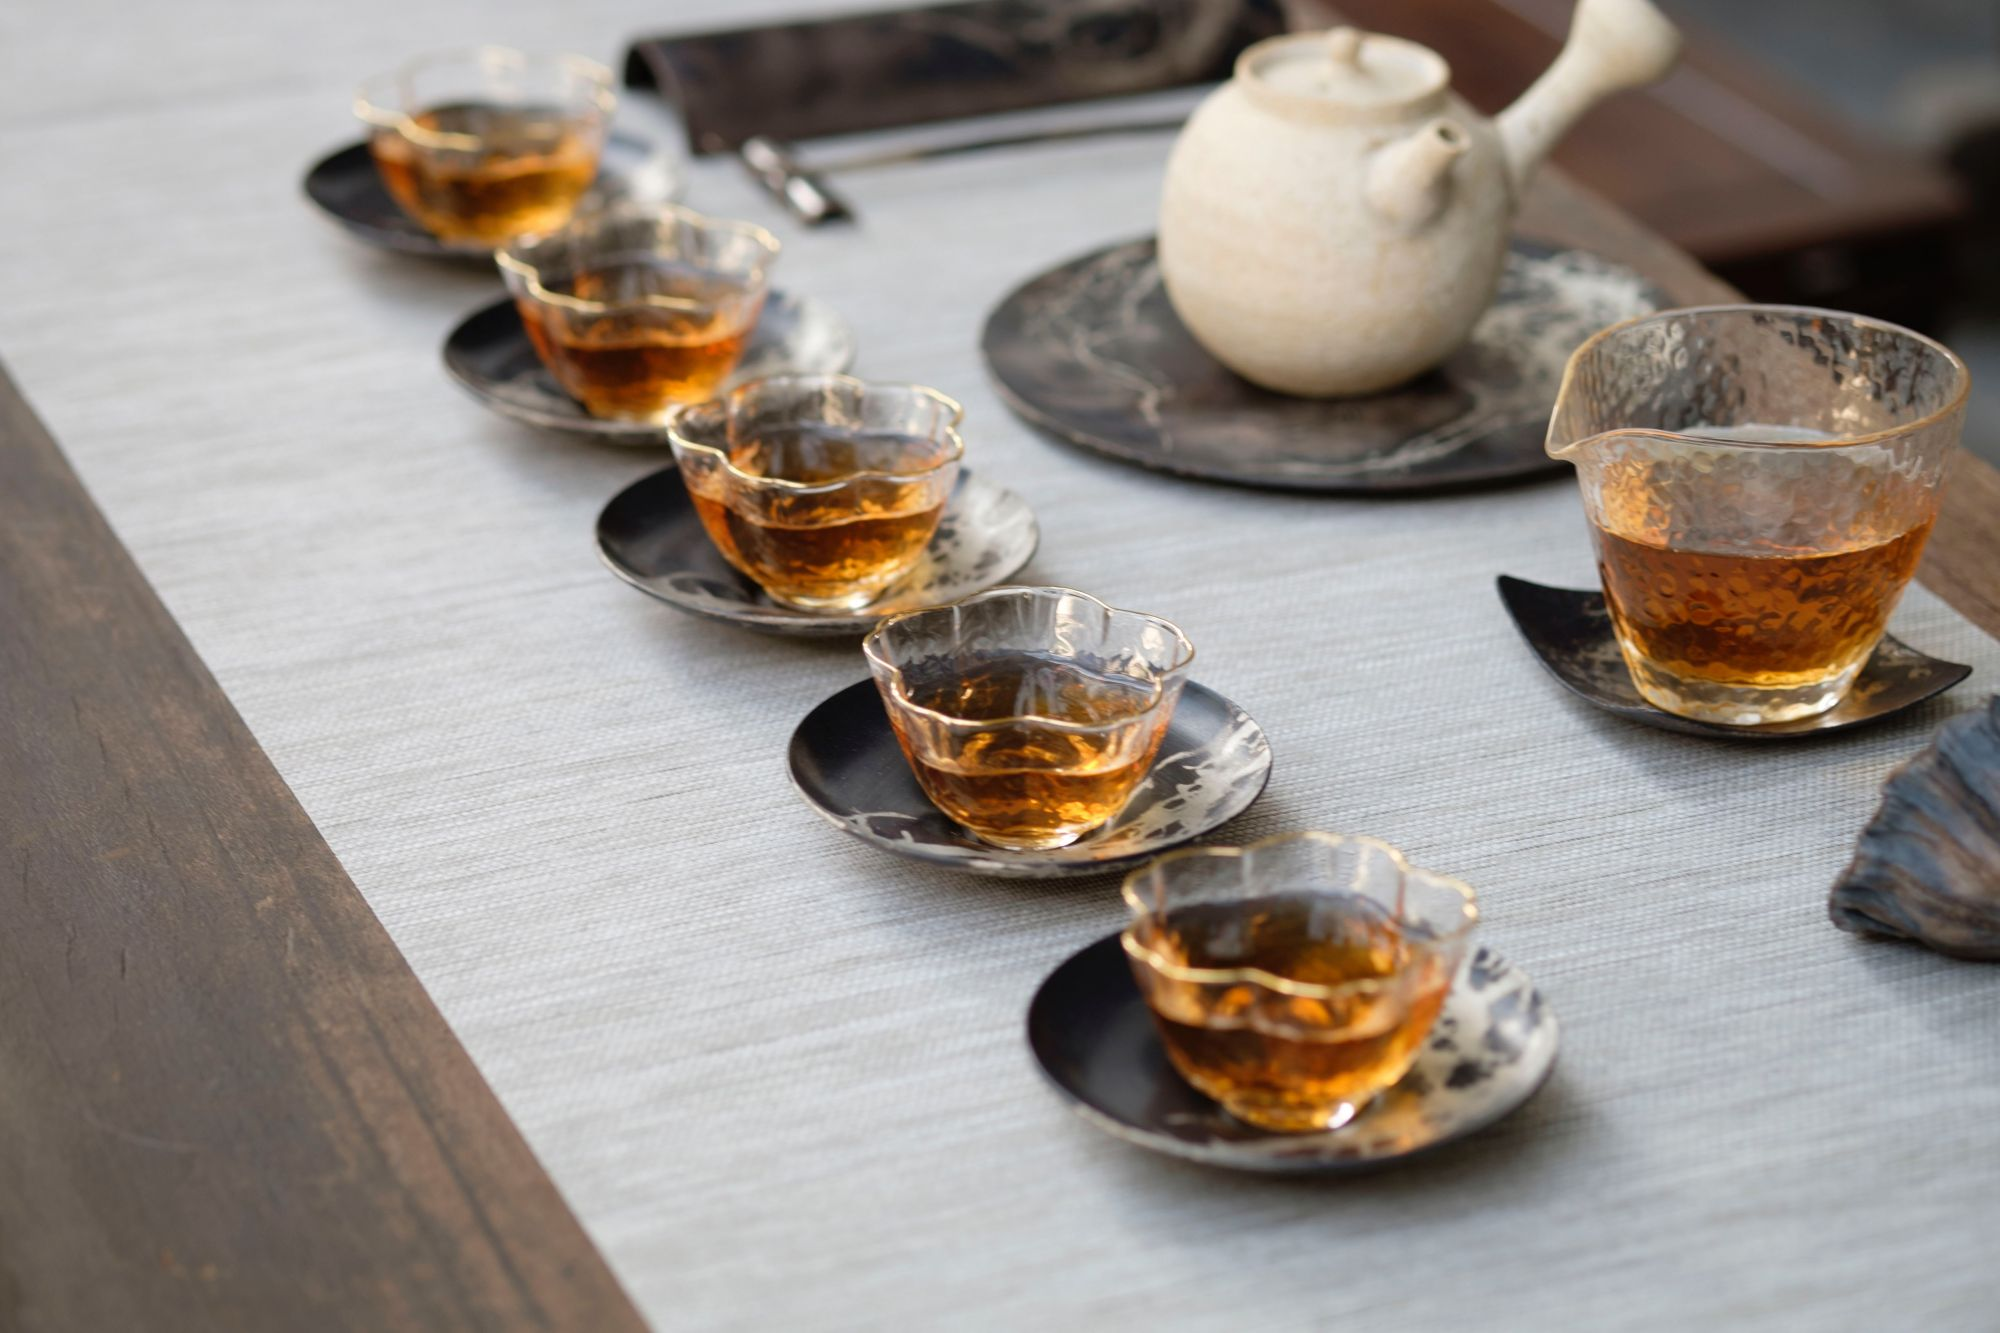 A Tea Curator Shares How The Drink Helps Us Reconnect With The Elements